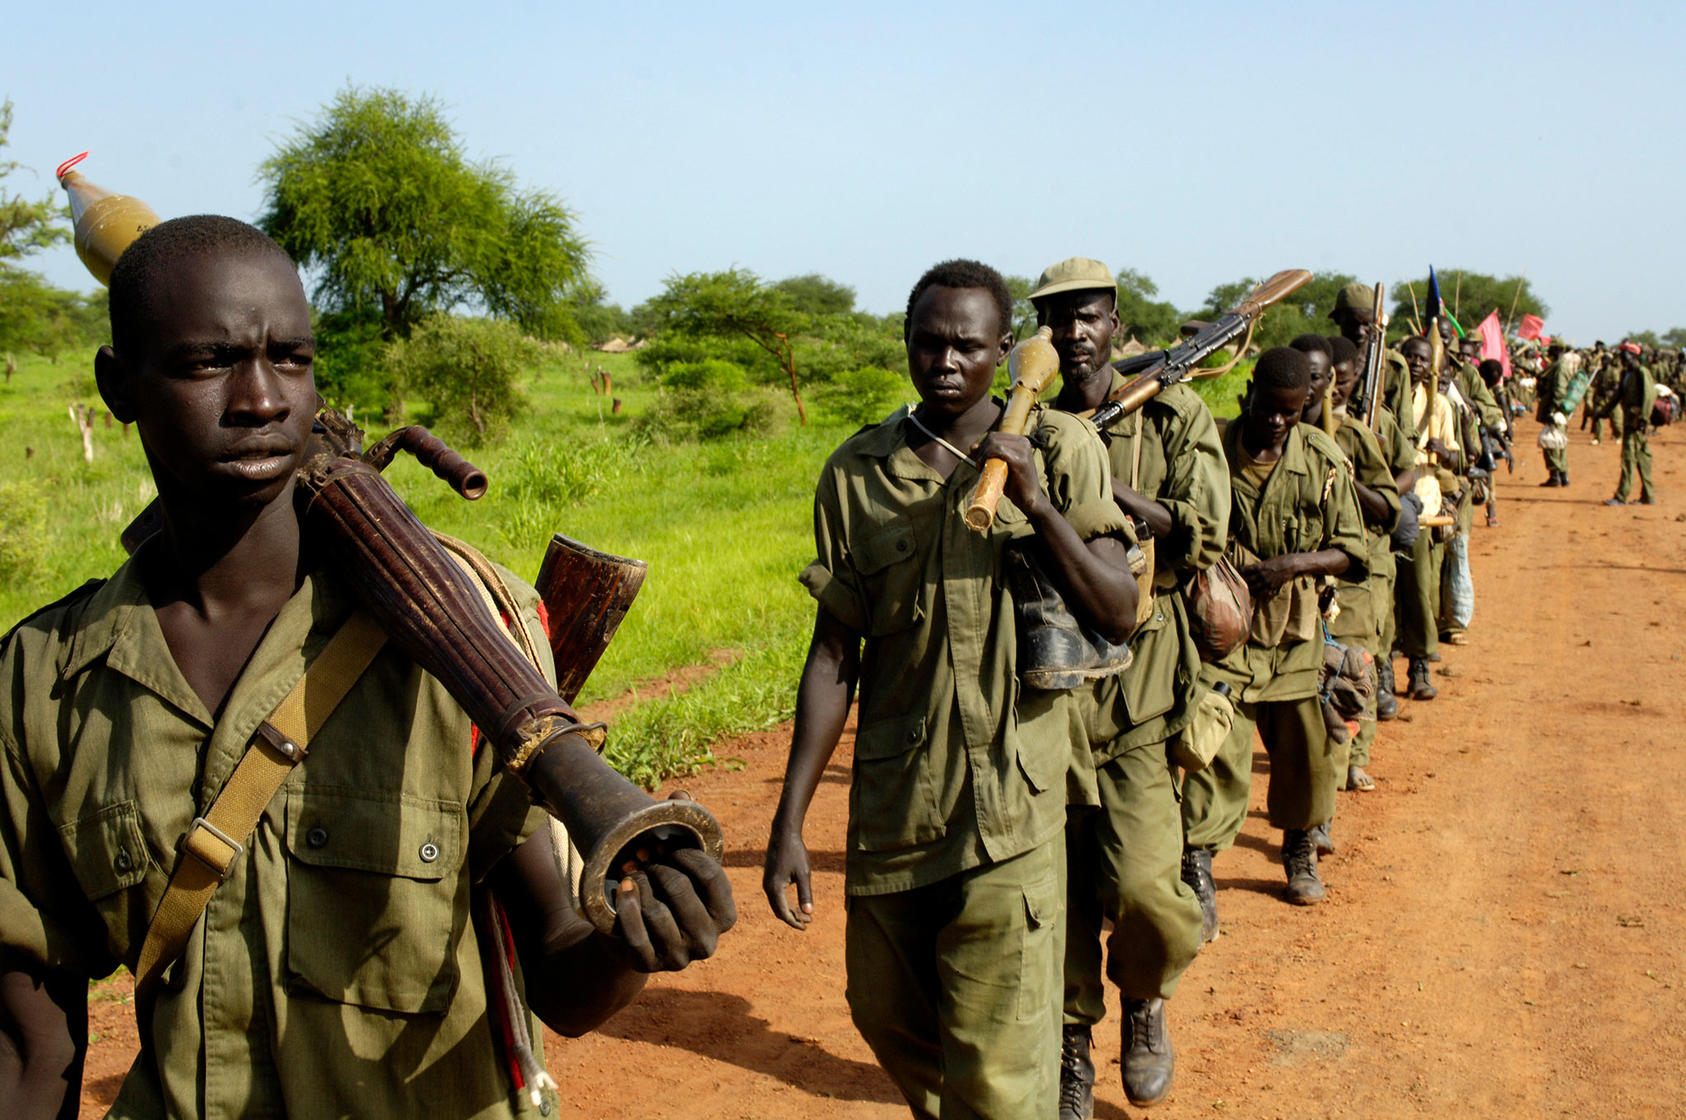 Soldiers of the Sudanese People's Liberation Army